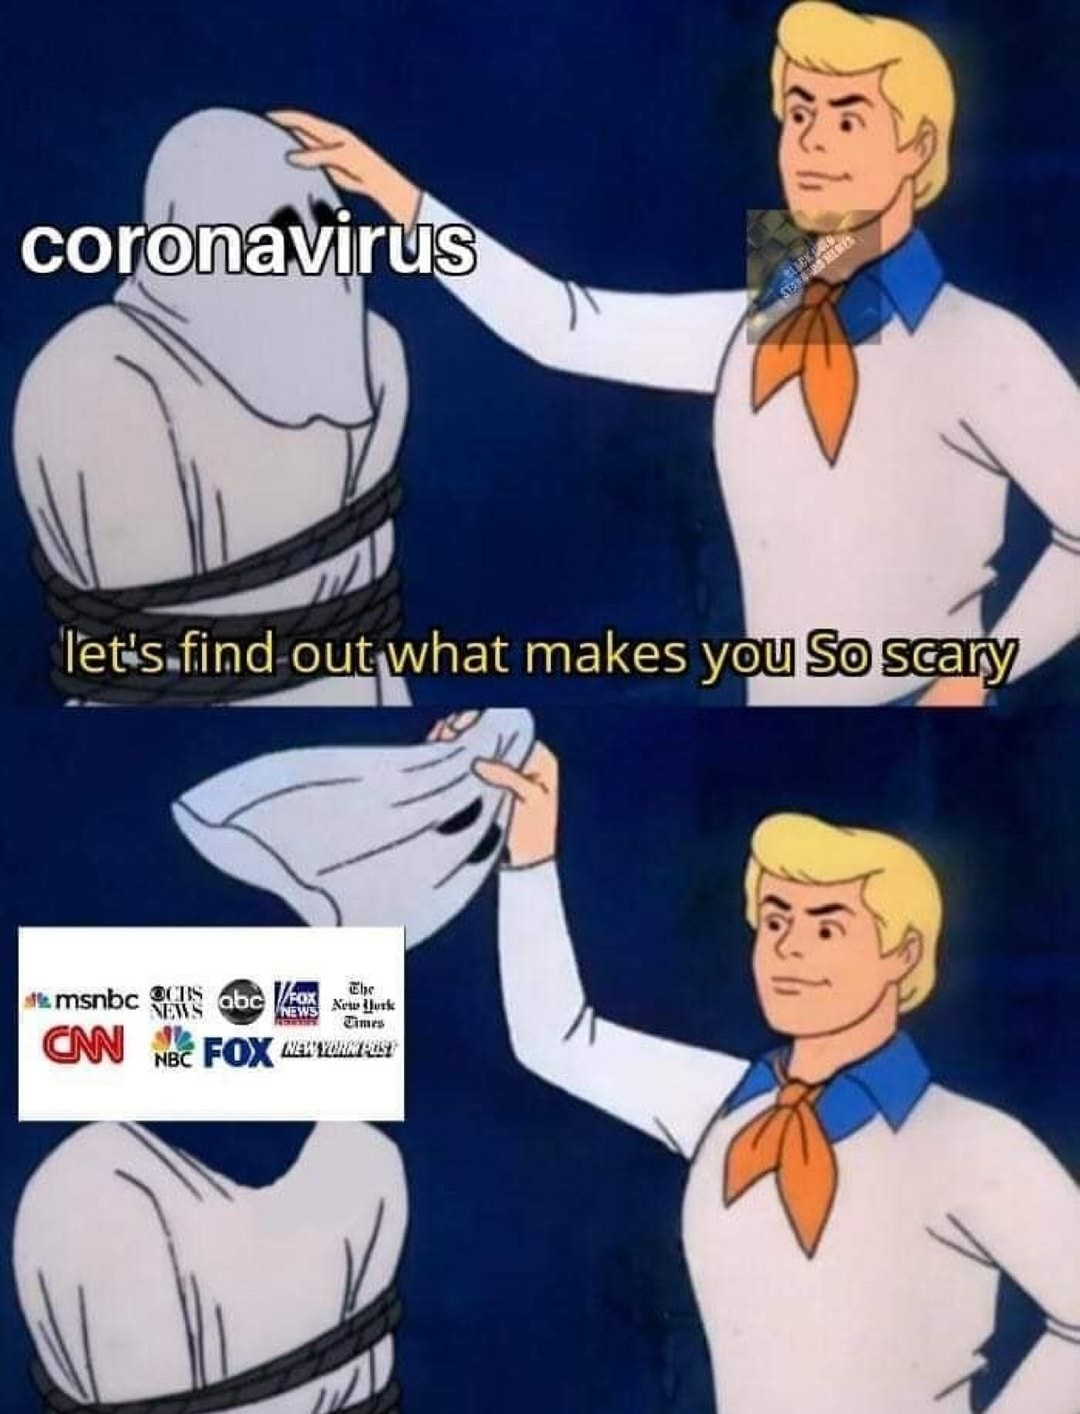 Corona is stupid. We have 6 different cures and a vaccine on the way... wtf - meme